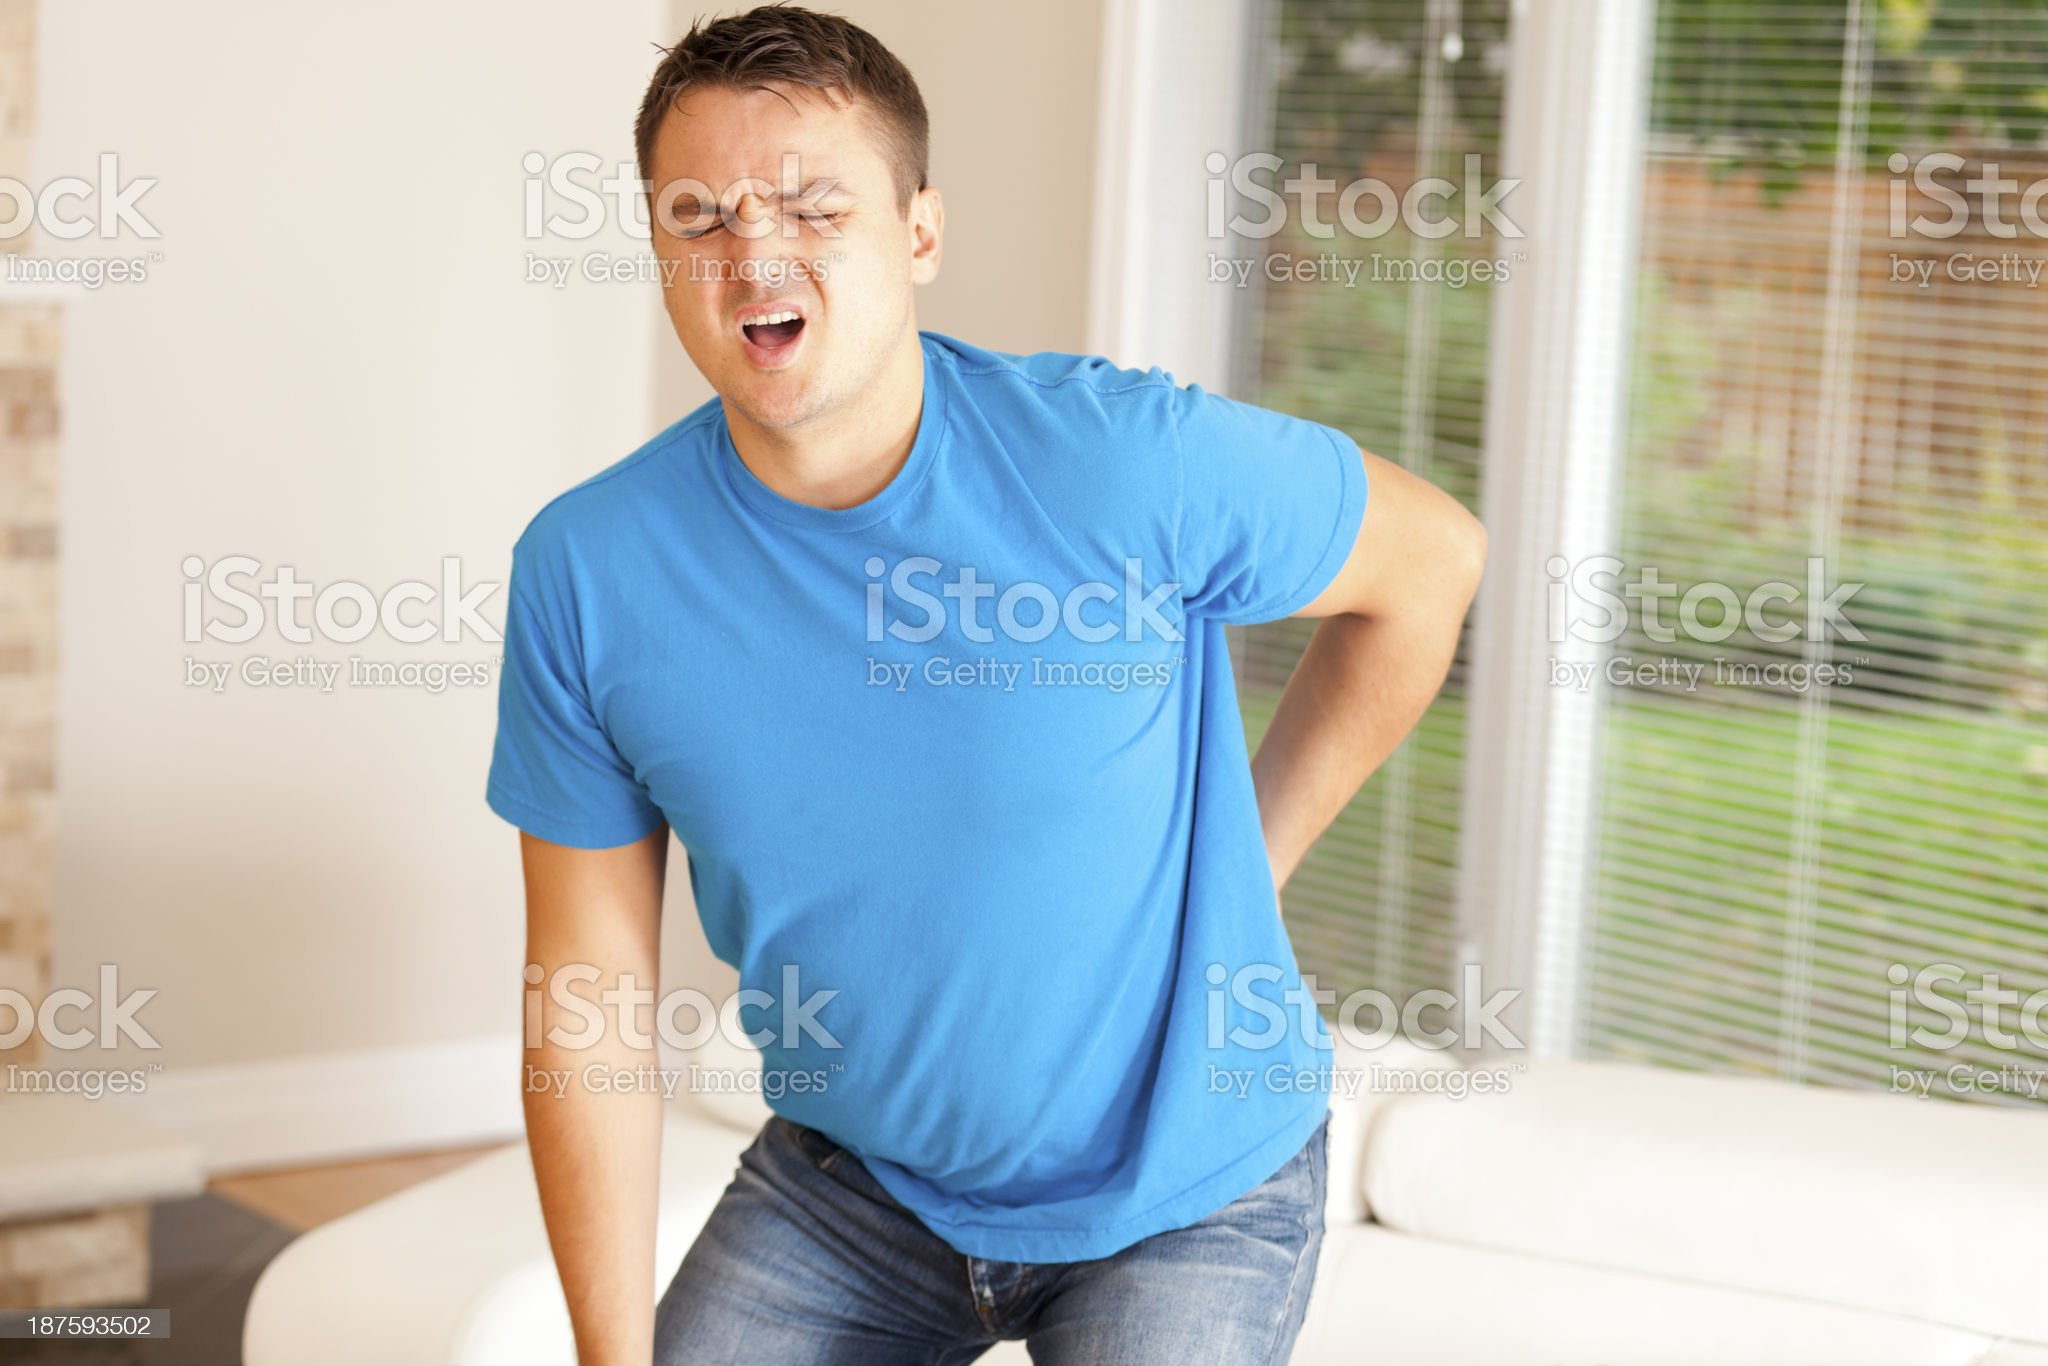 Man with back pain royalty-free stock photo